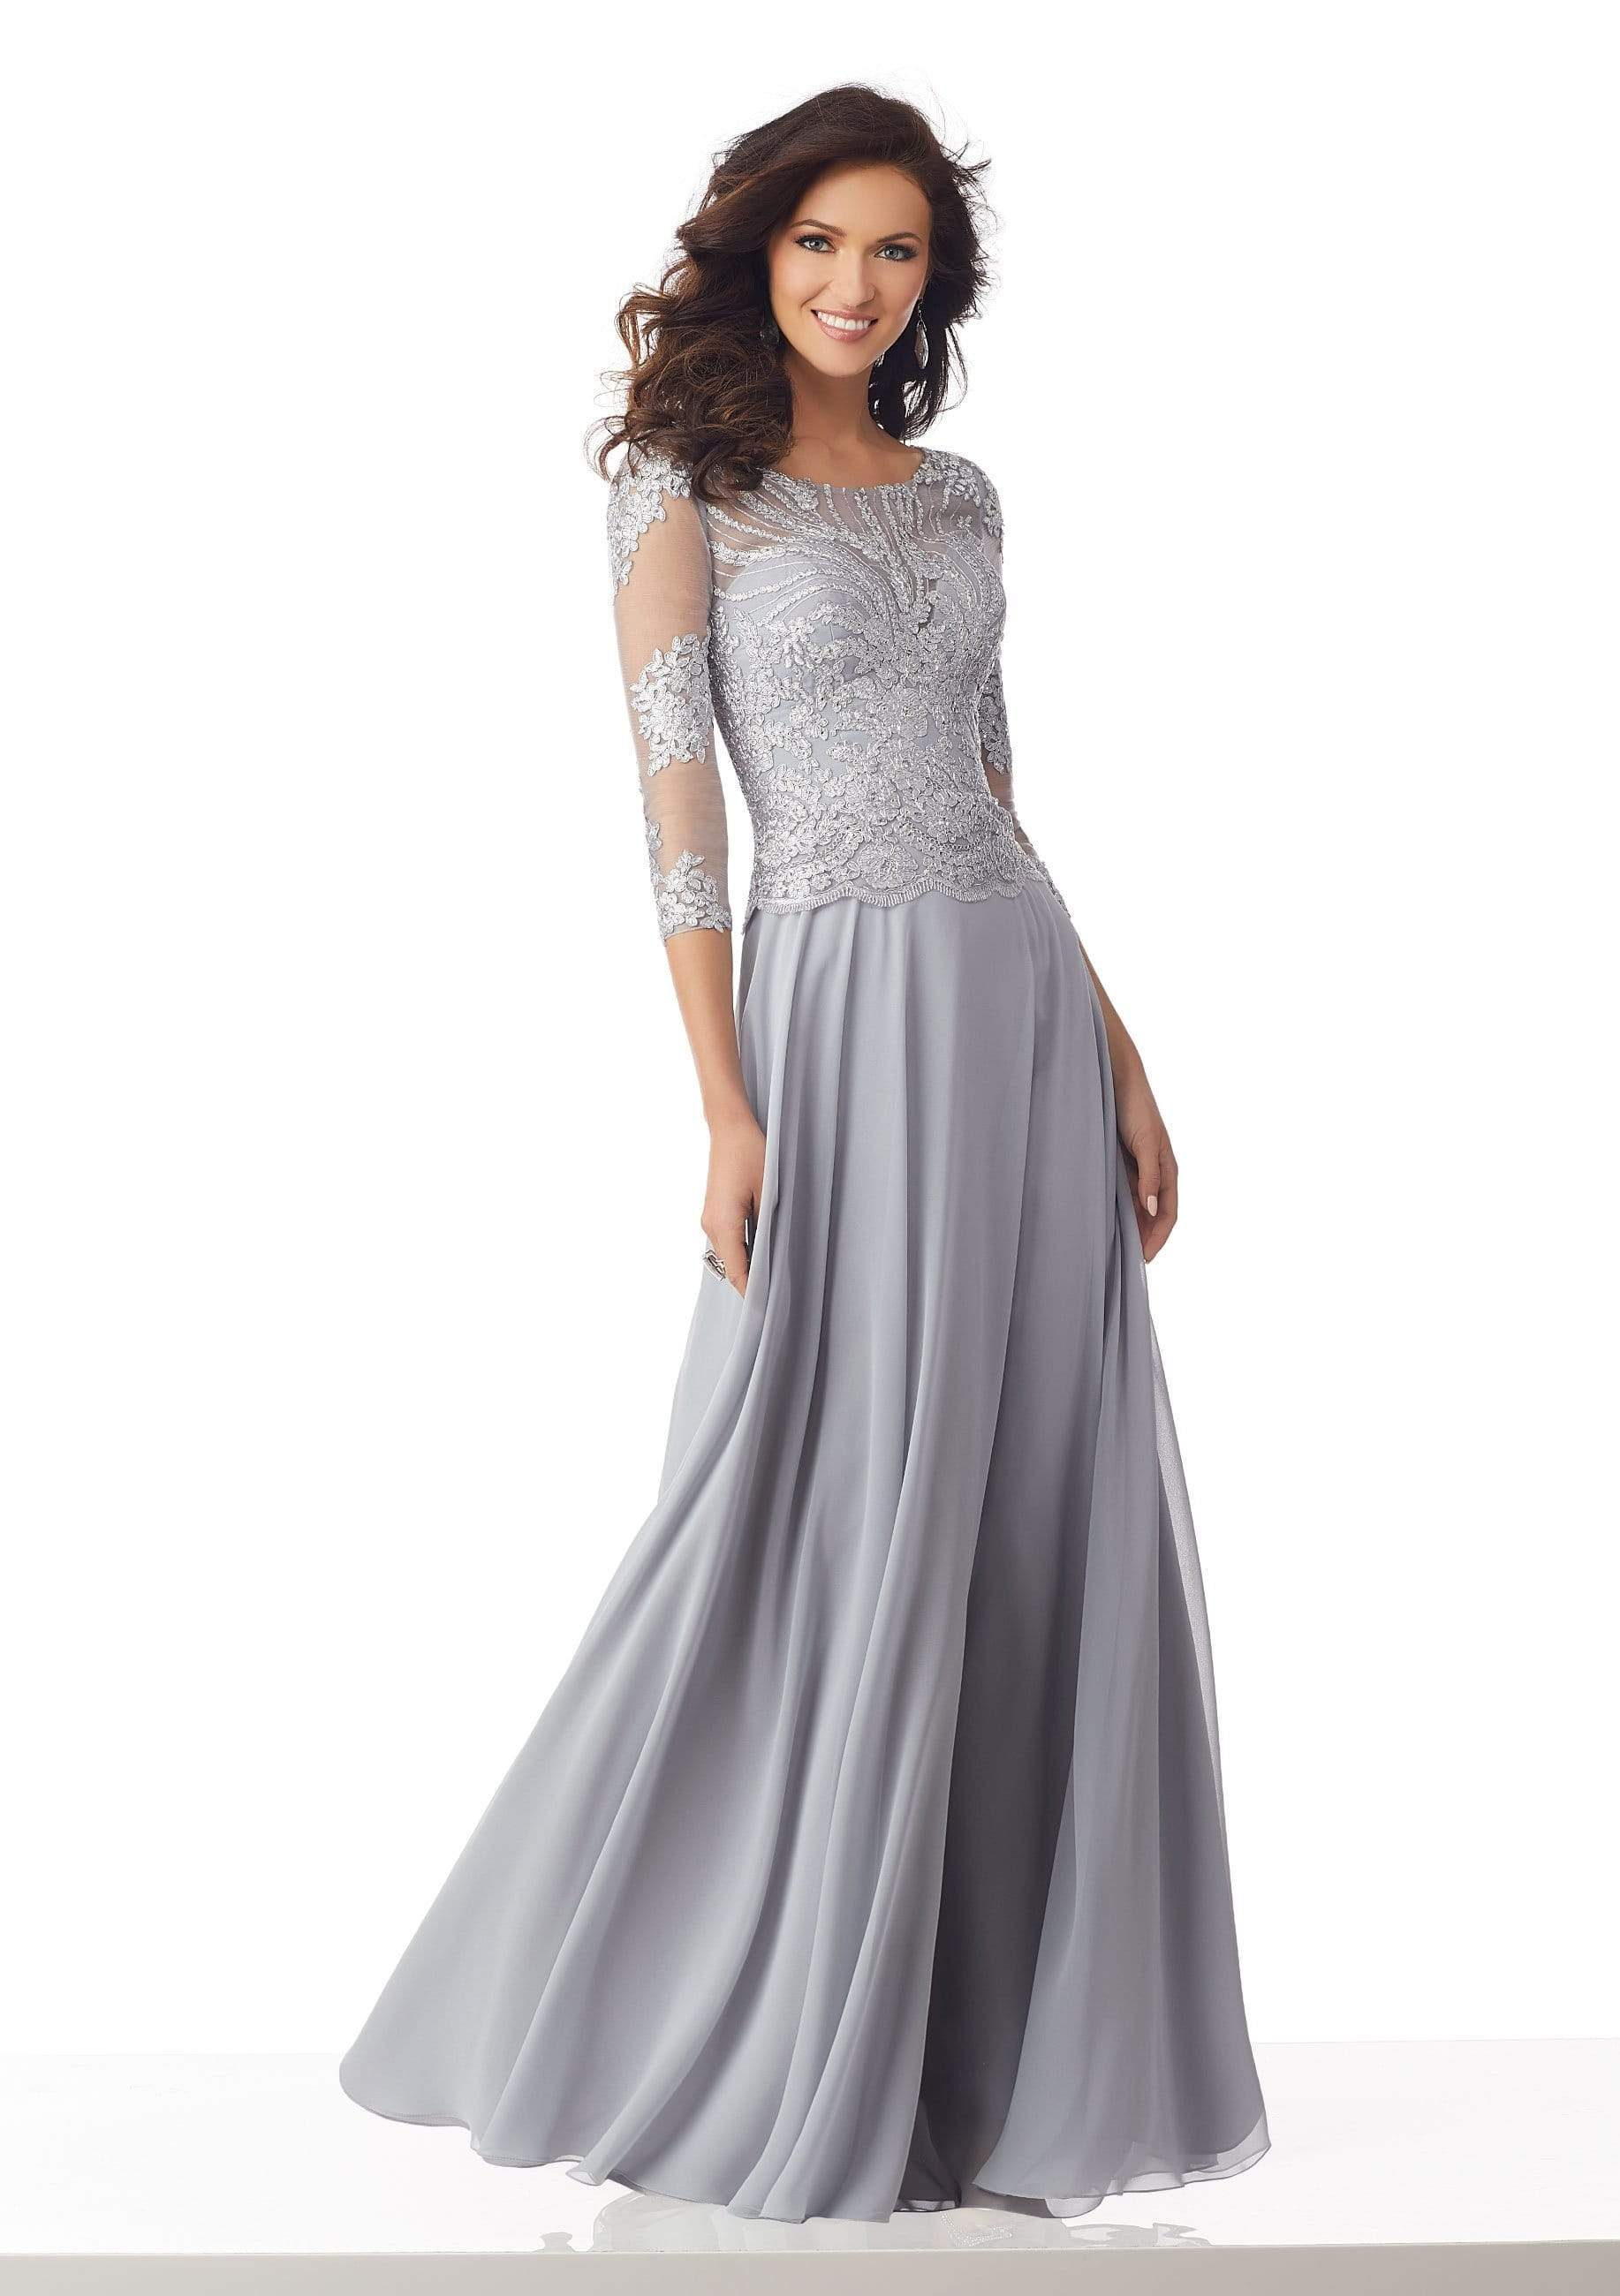 MGNY By Mori Lee - 71813 Metallic Lace A-Line Evening Dress Mother of the Bride Dresses 0 / Silver